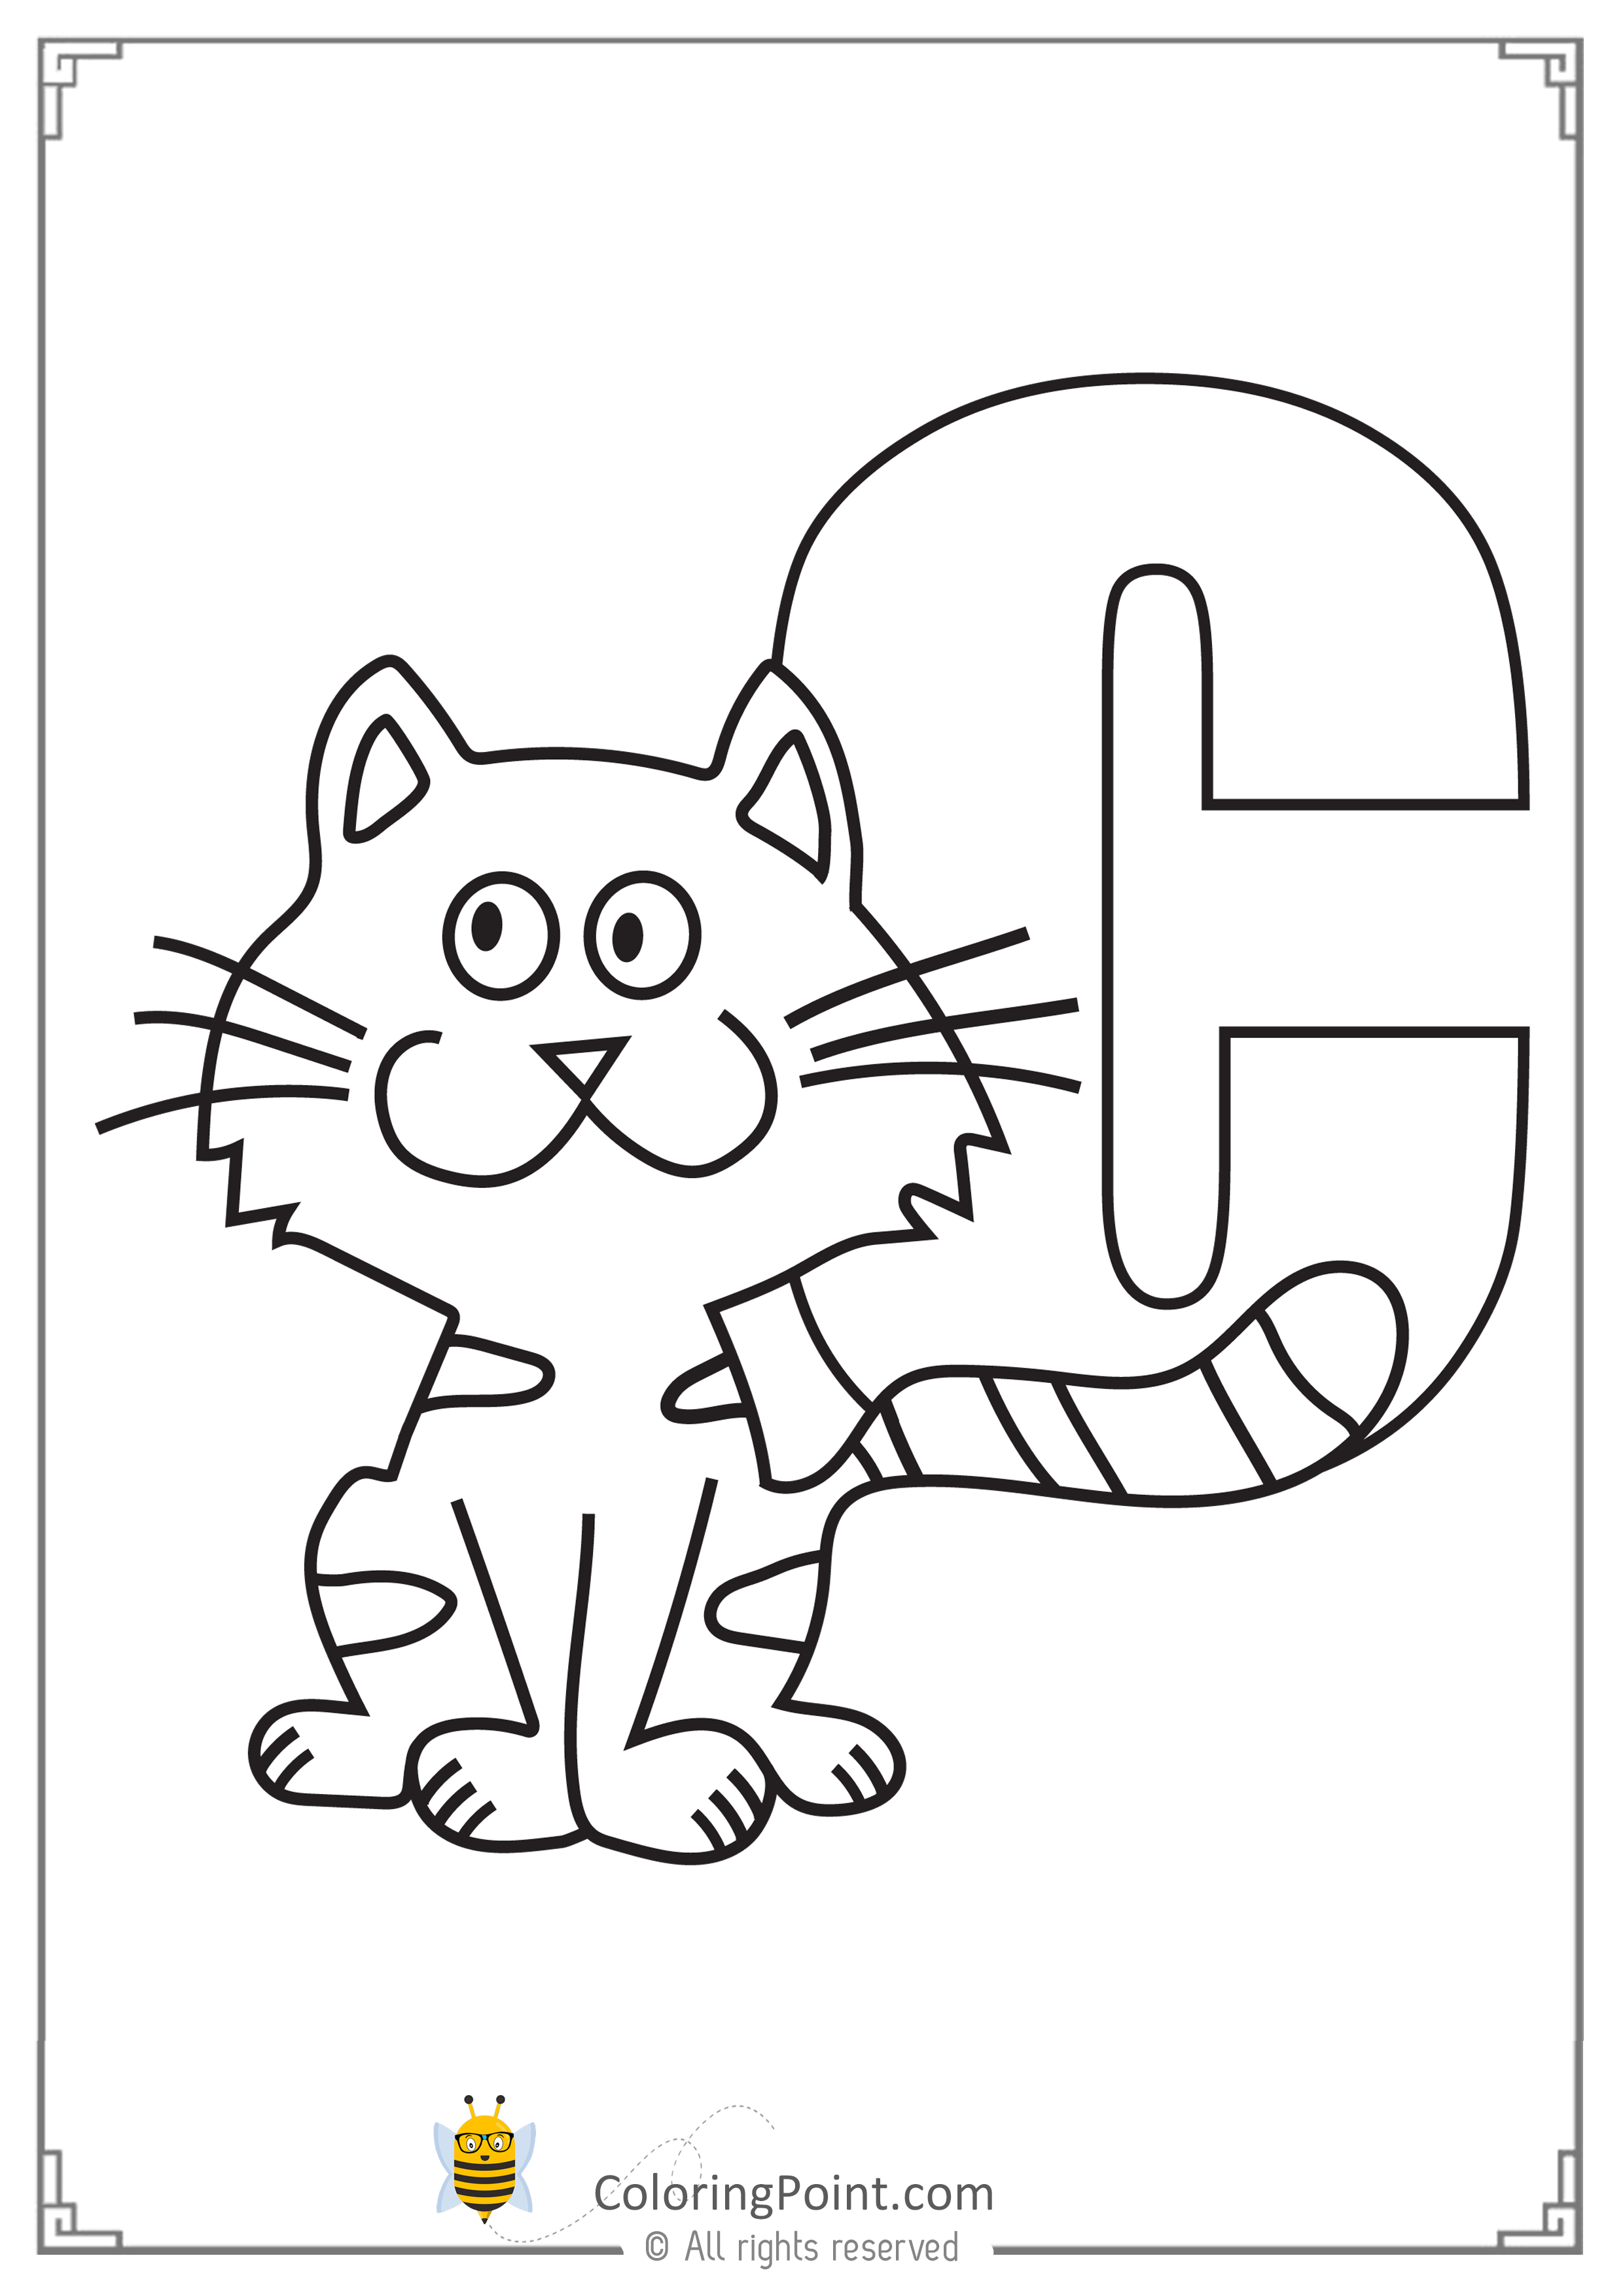 Alphabet Letter C Printable Activities Coloring Page